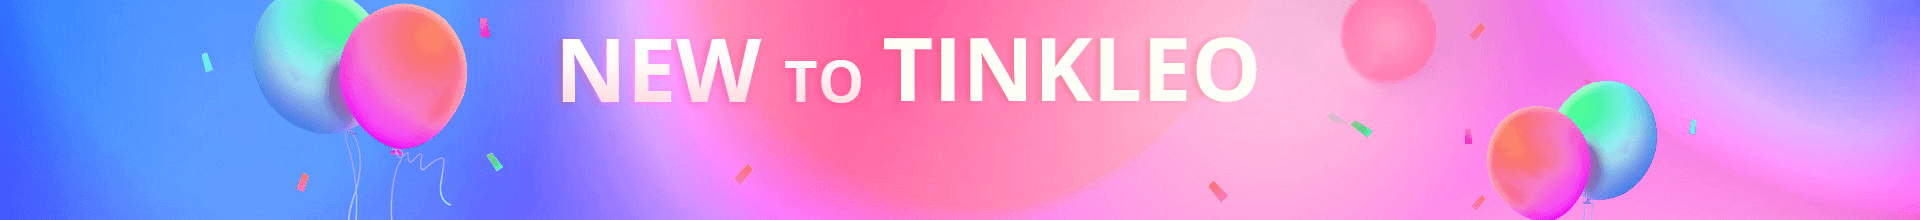 Tinkleo Exclusive Coupons